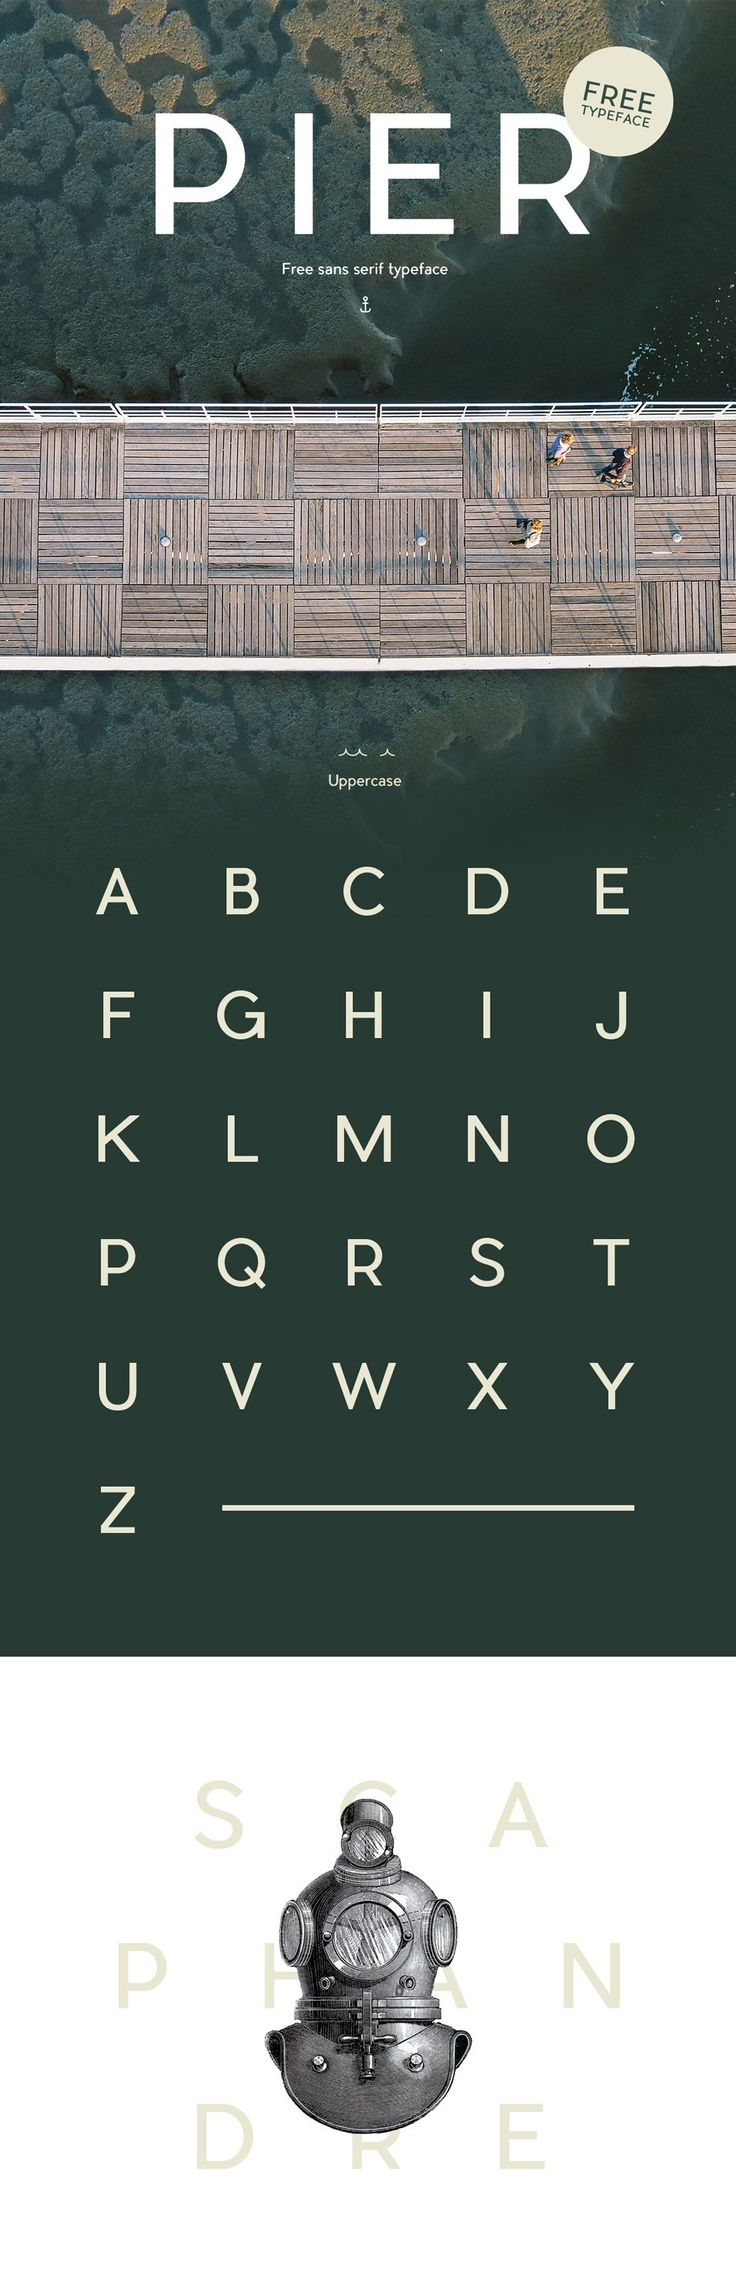 12 Free Bold & Stylish Fonts for Graphic Designers 2015 | Graphic Design Inspiration